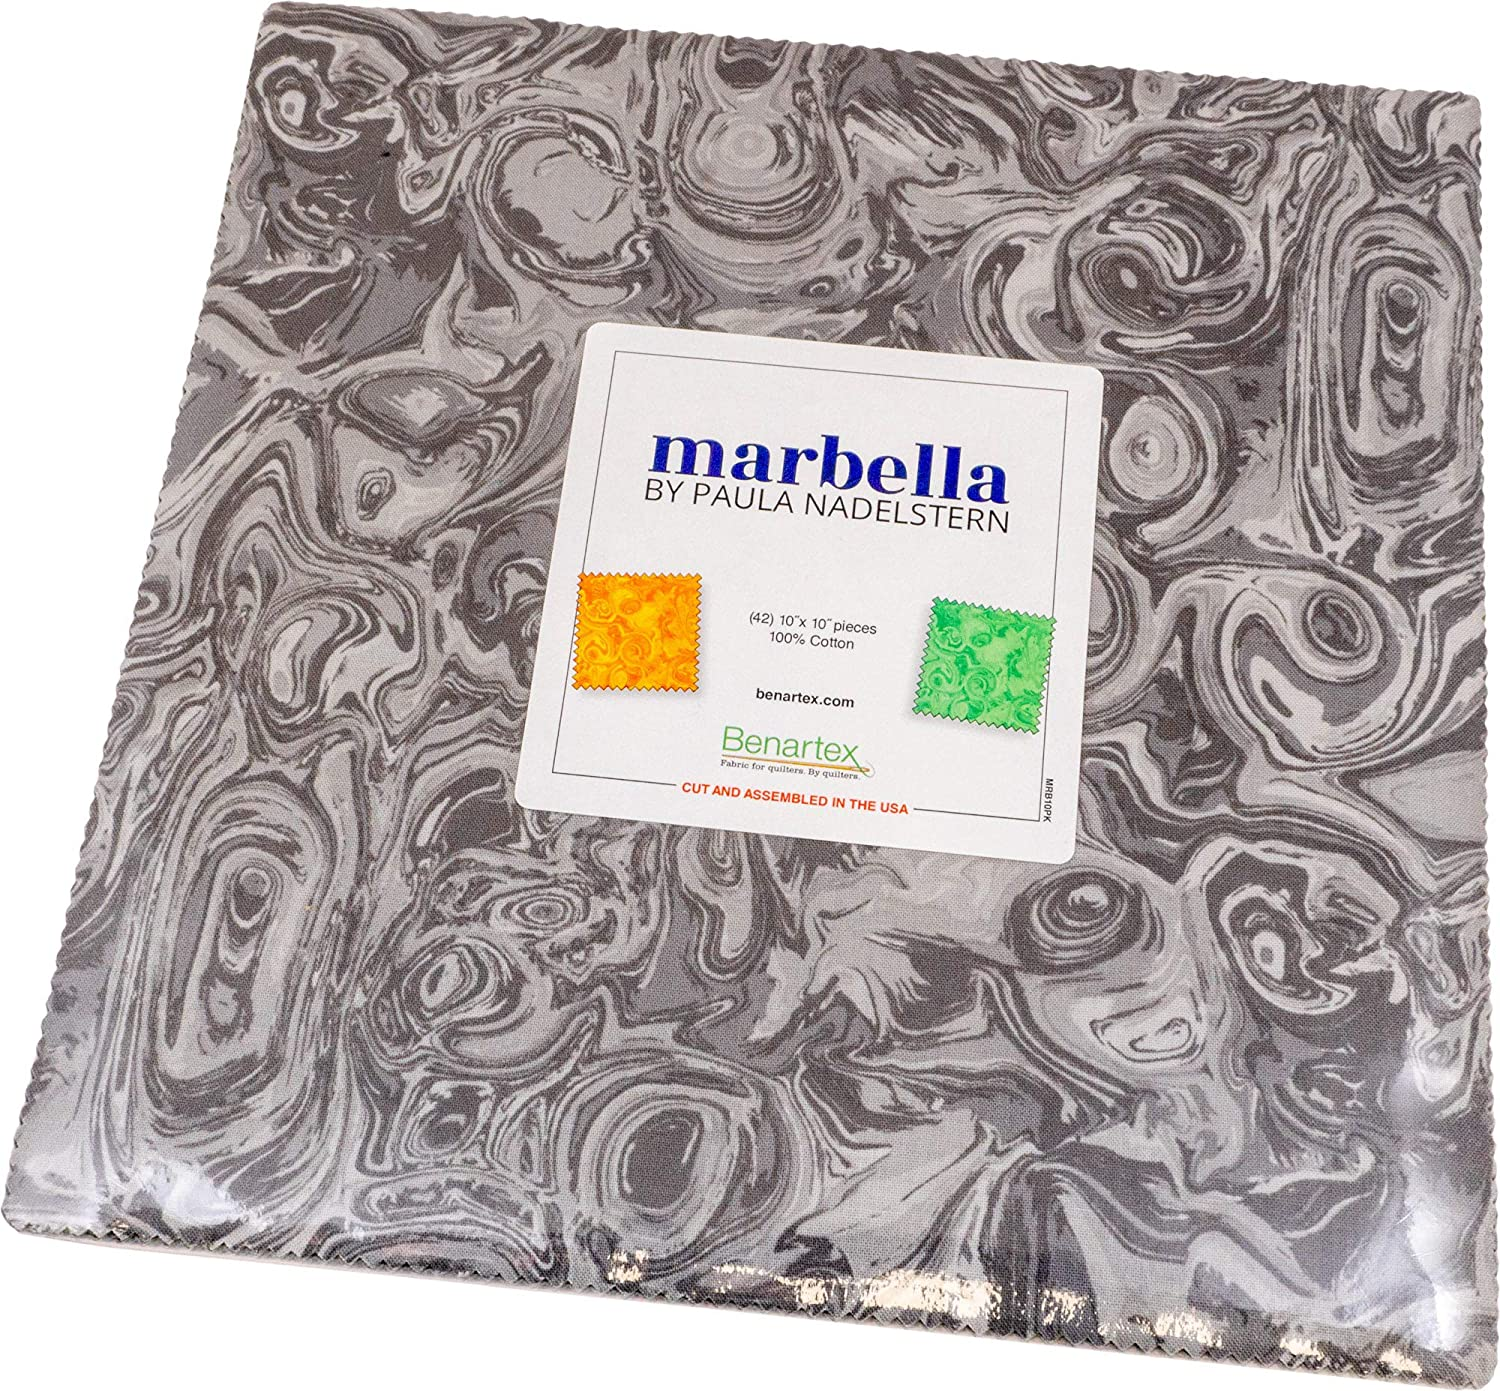 Paula Nadelstern Marbella 10X10 Pack 42 Squares ! Super beauty product restock quality top! 2021 Ca 10-inch Layer